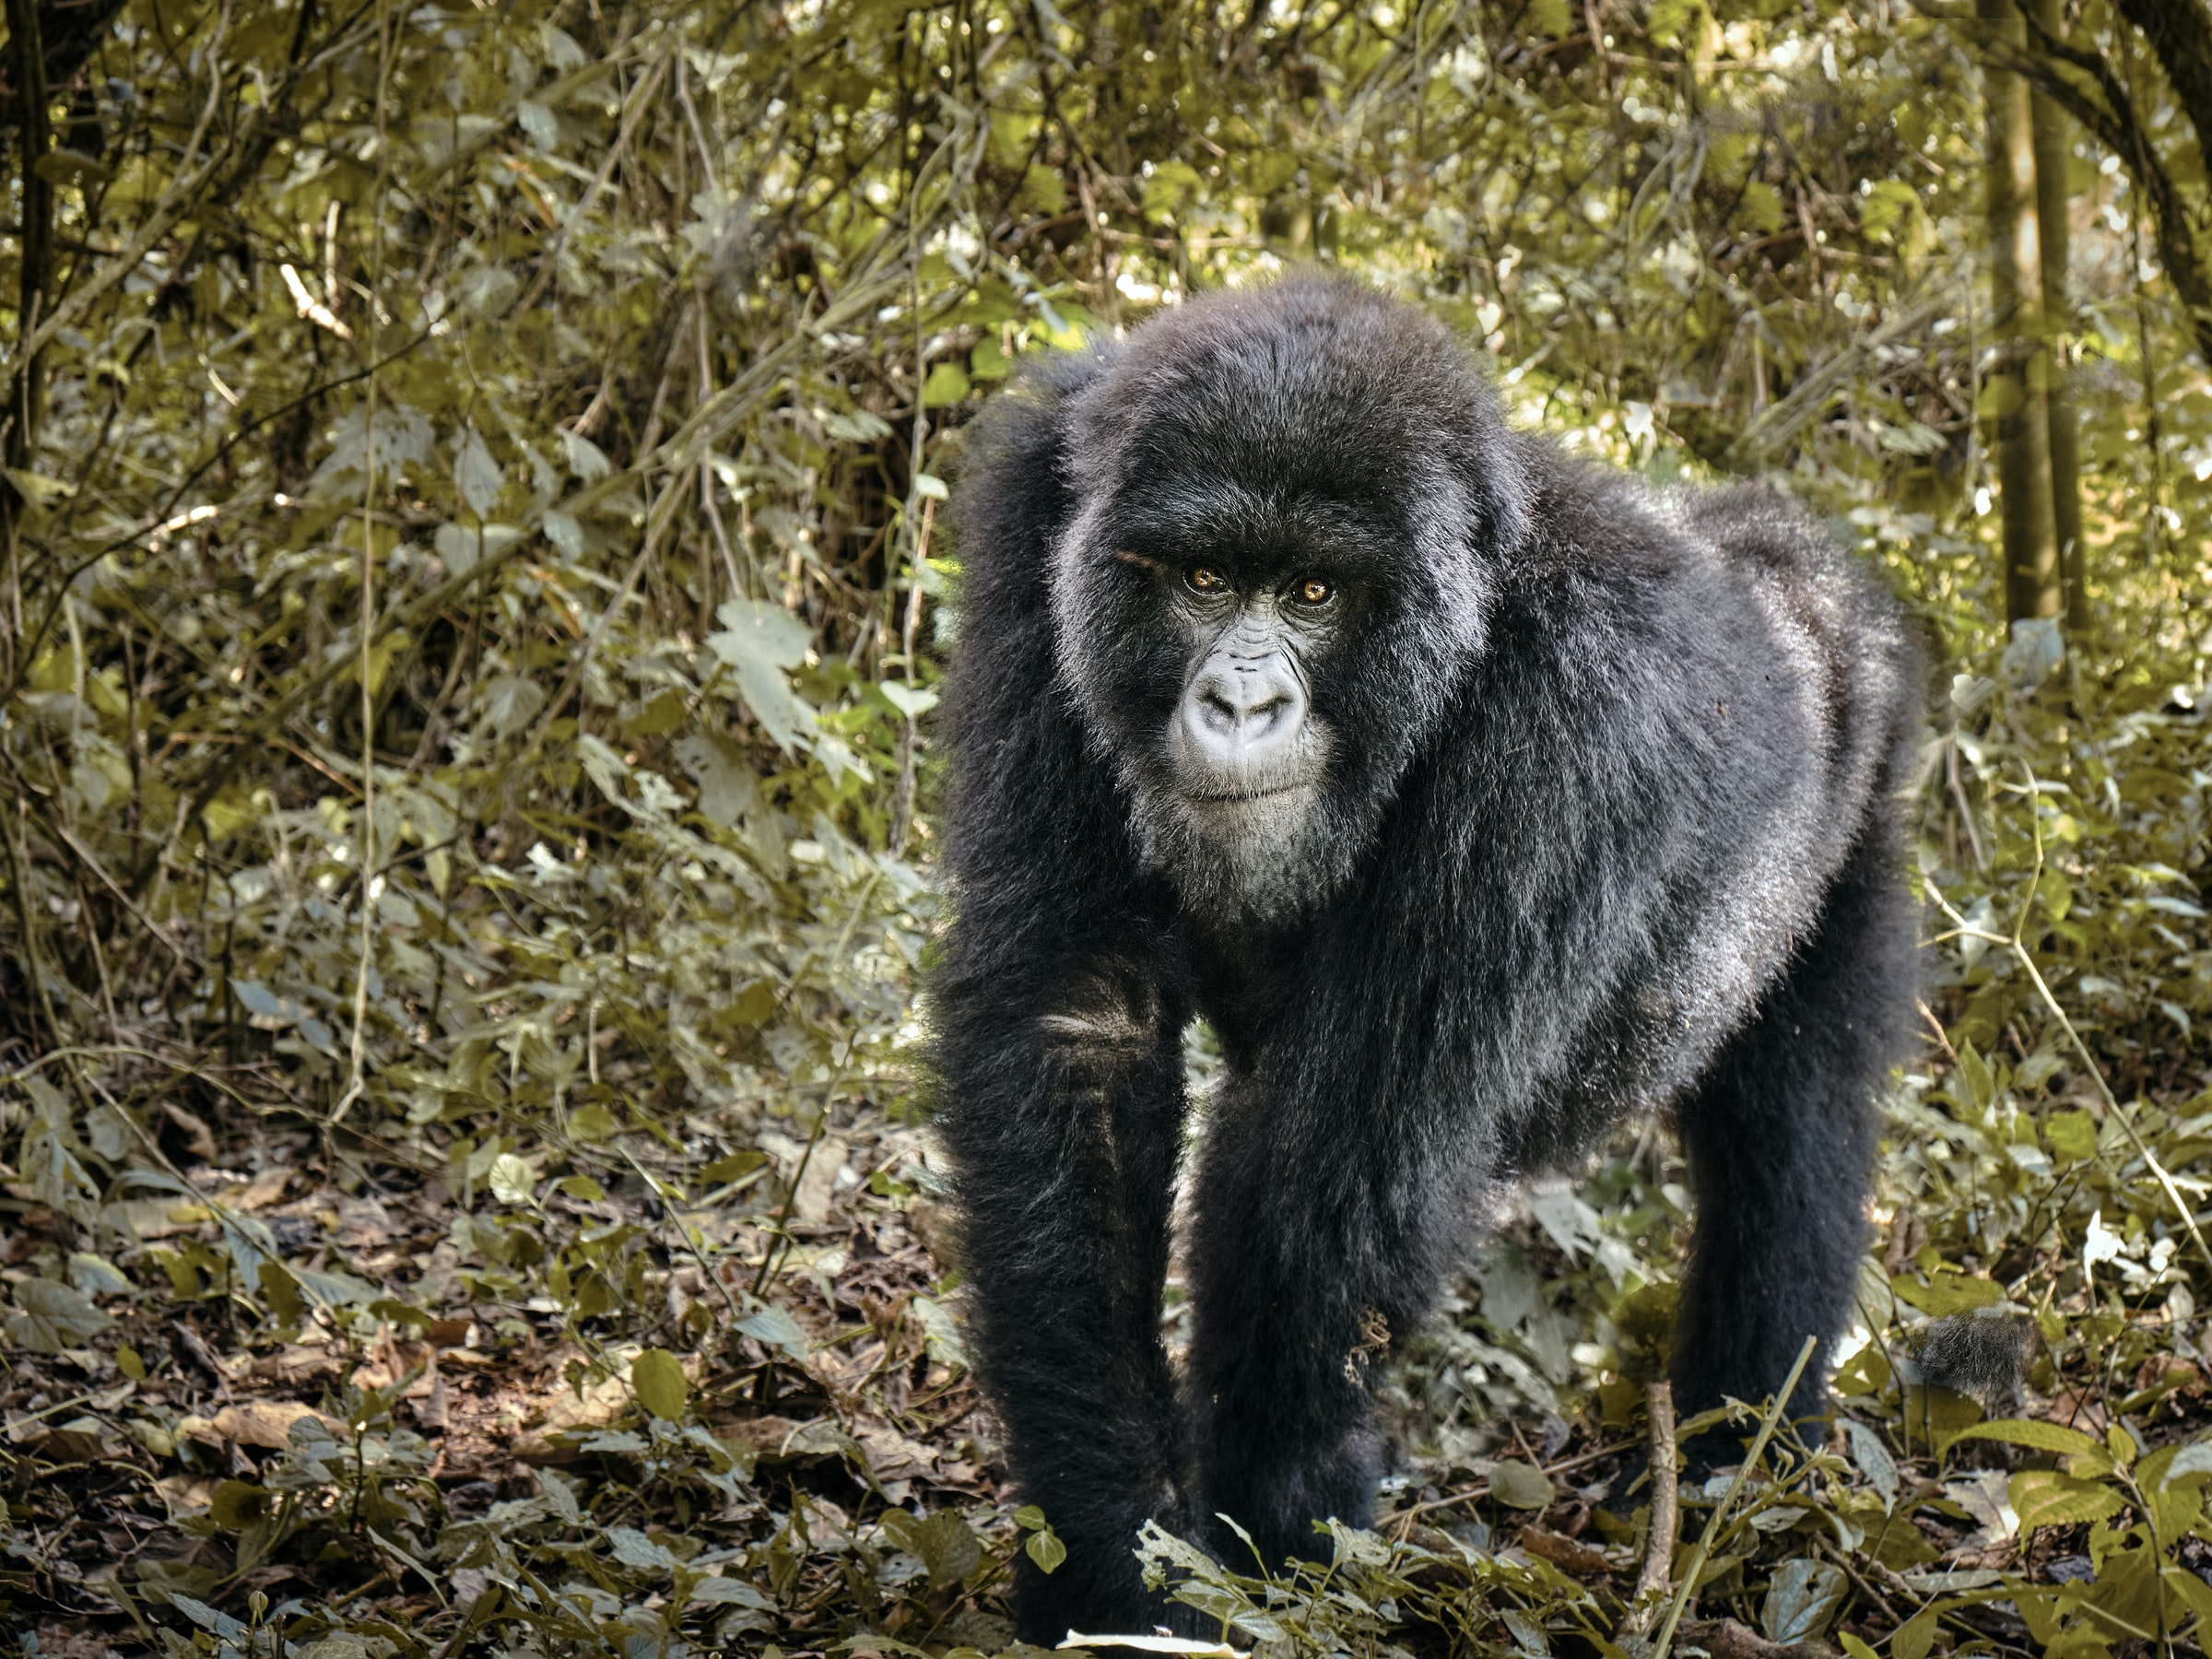 Gorilla, Virunga Nationaal Park